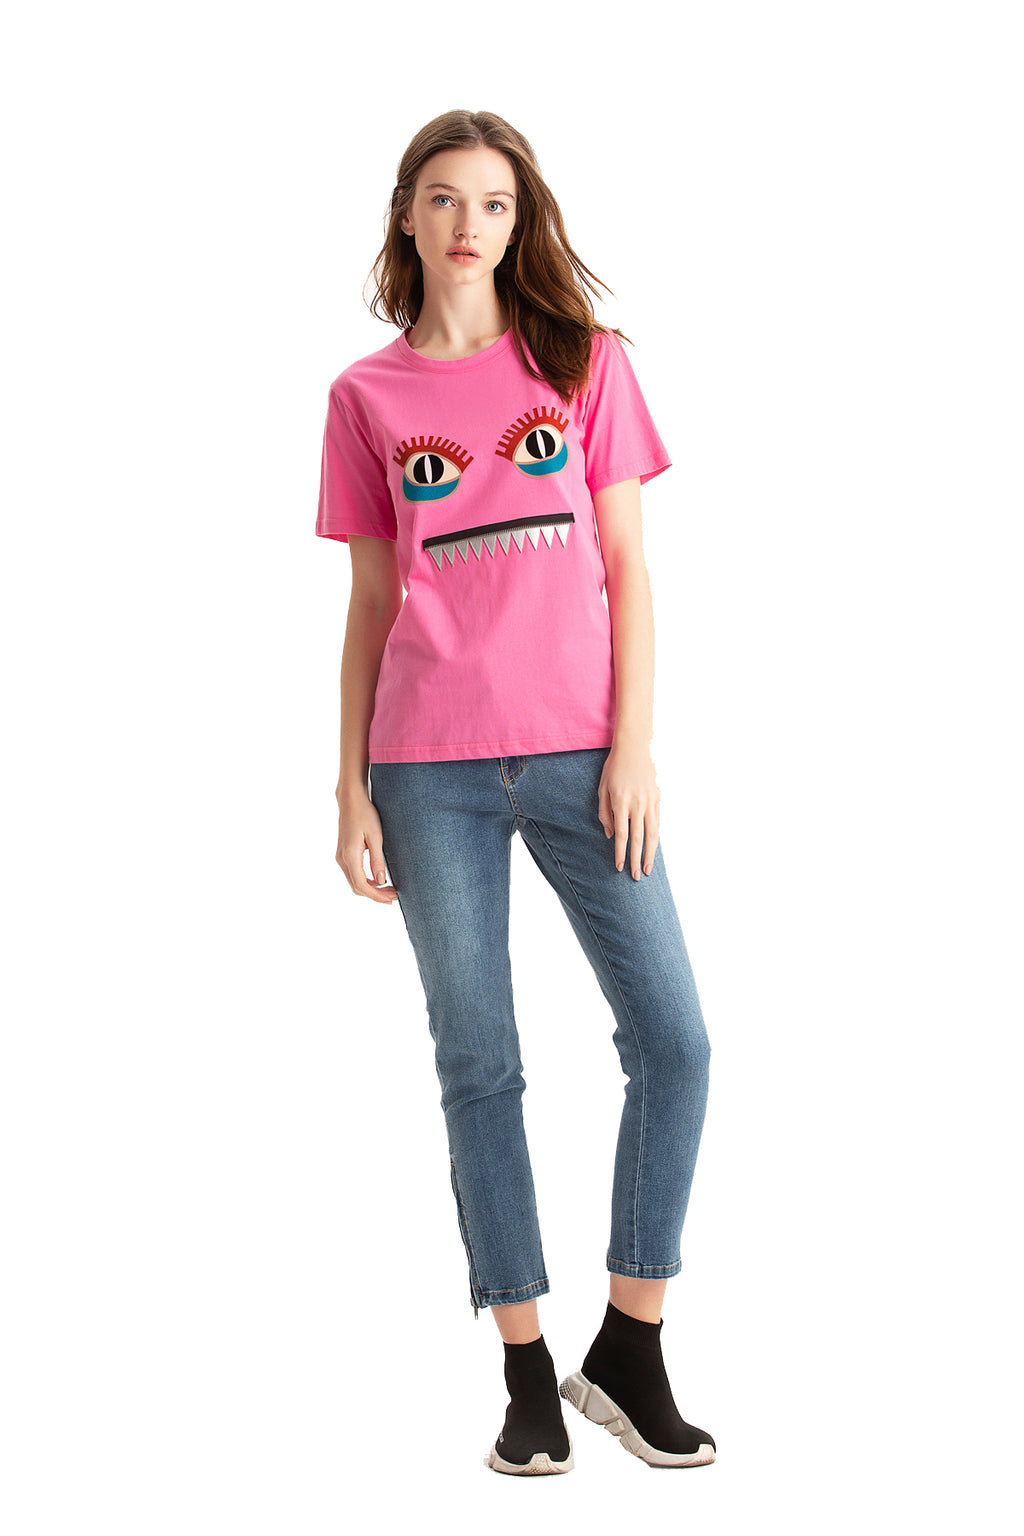 Little Mons T-Shirt for Adults - Pink